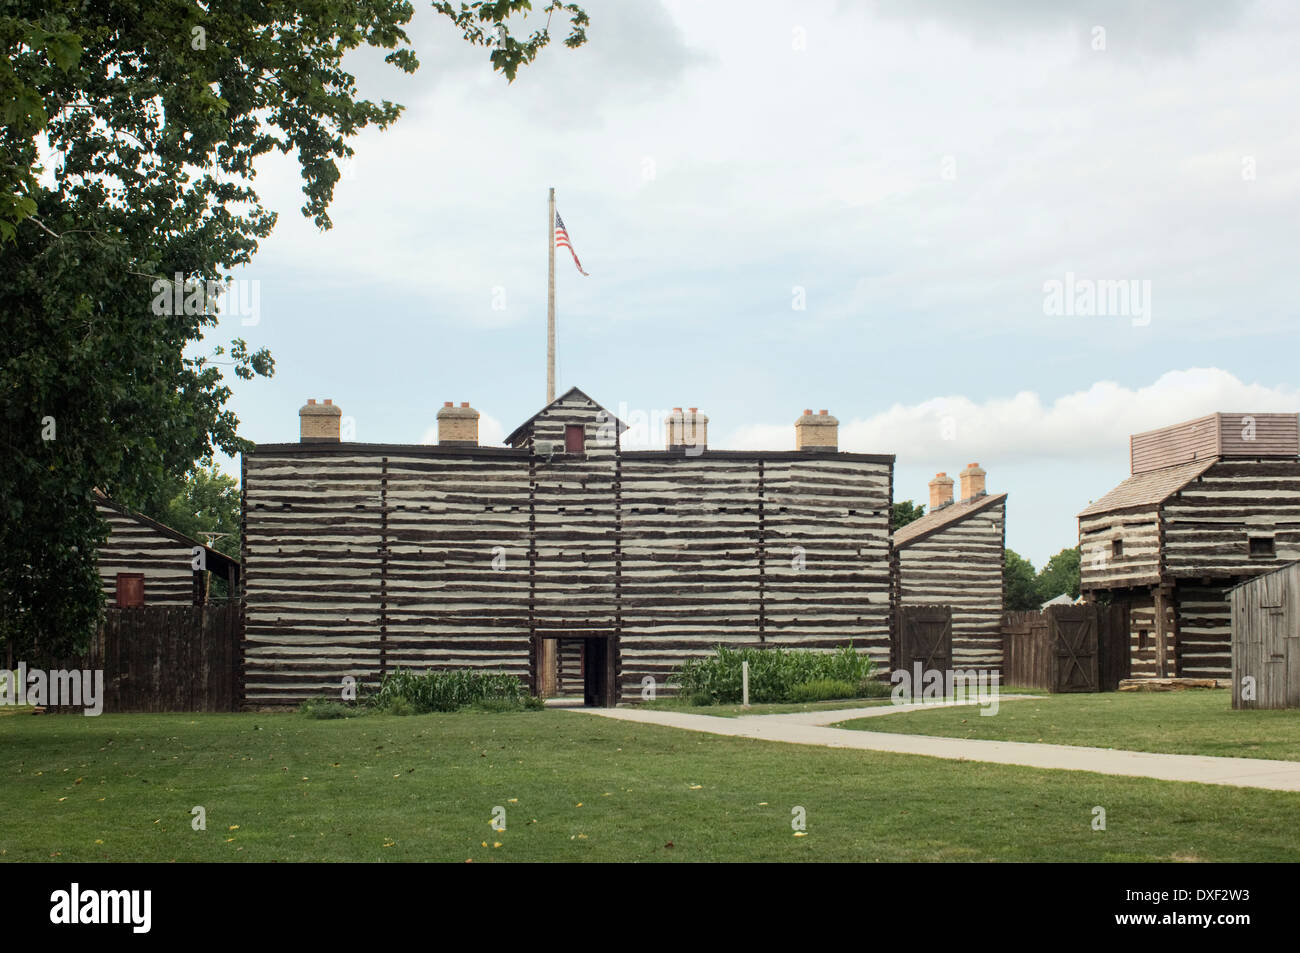 Replica of old Fort Wayne, built in 1815 on the Maumee River, Ft Wayne, Indiana. Digital photograph Stock Photo